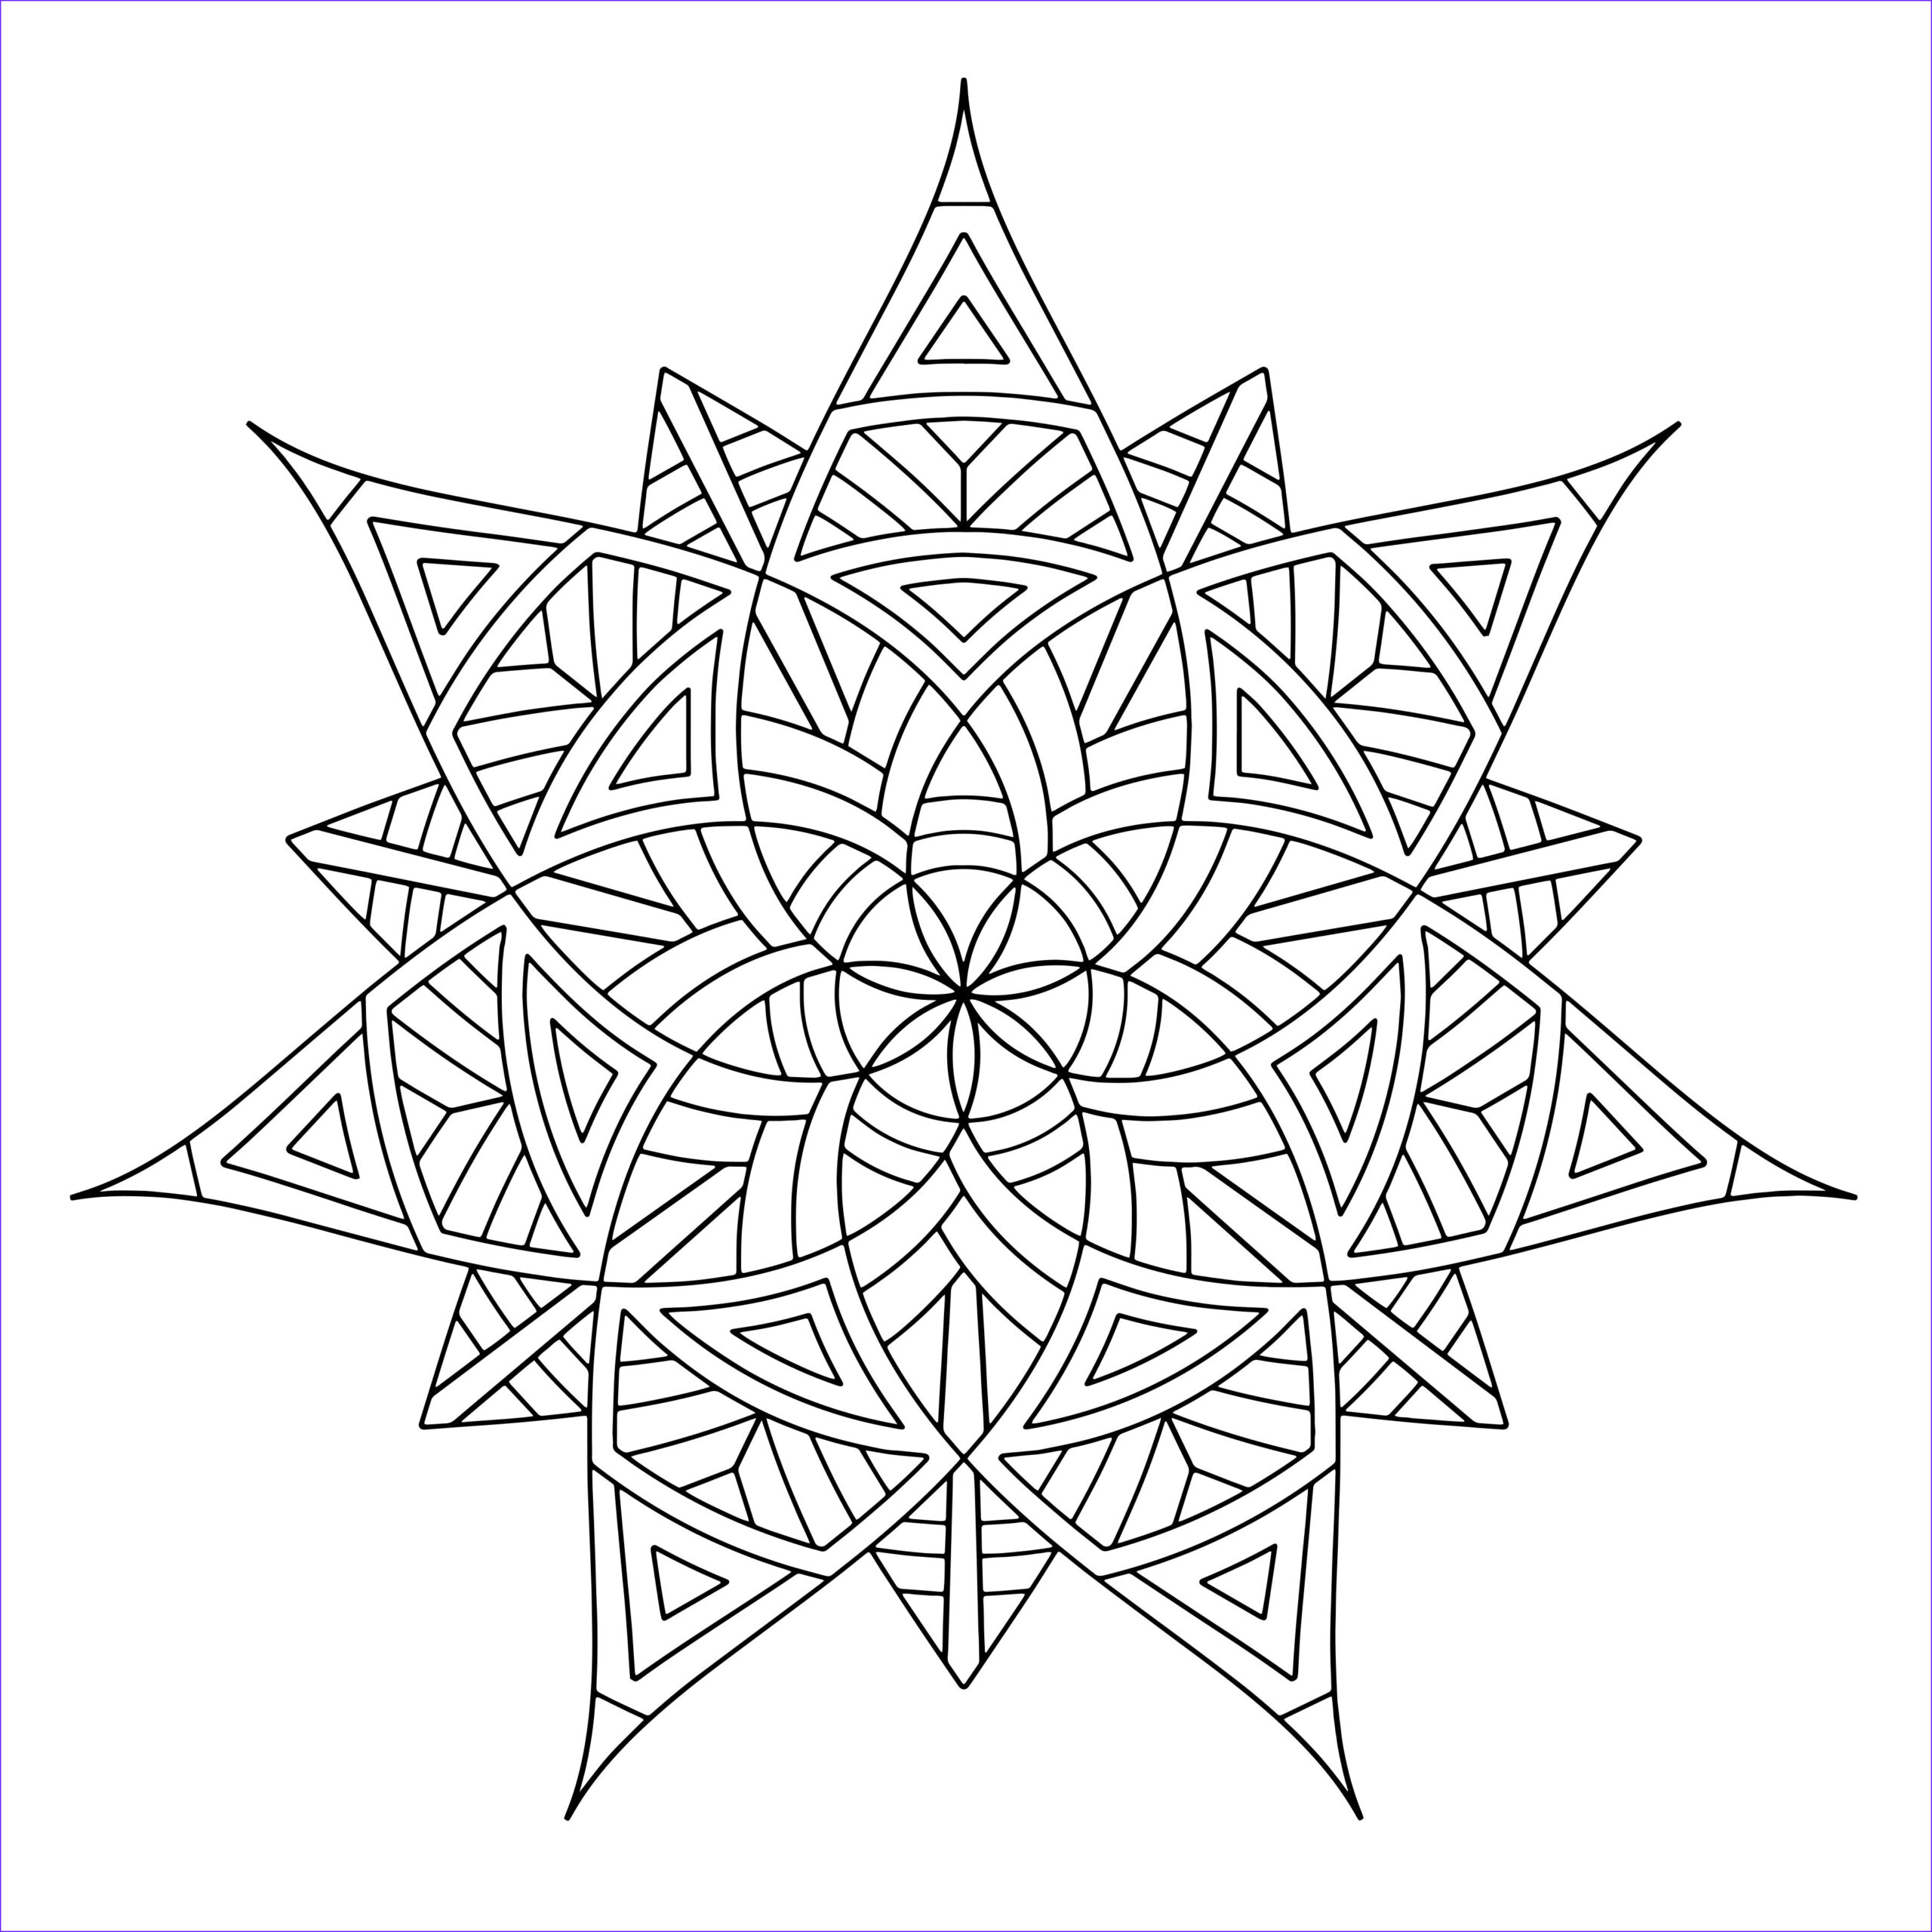 Printable Mandala Coloring Pages Awesome Photos Free Printable Geometric Coloring Pages for Adults